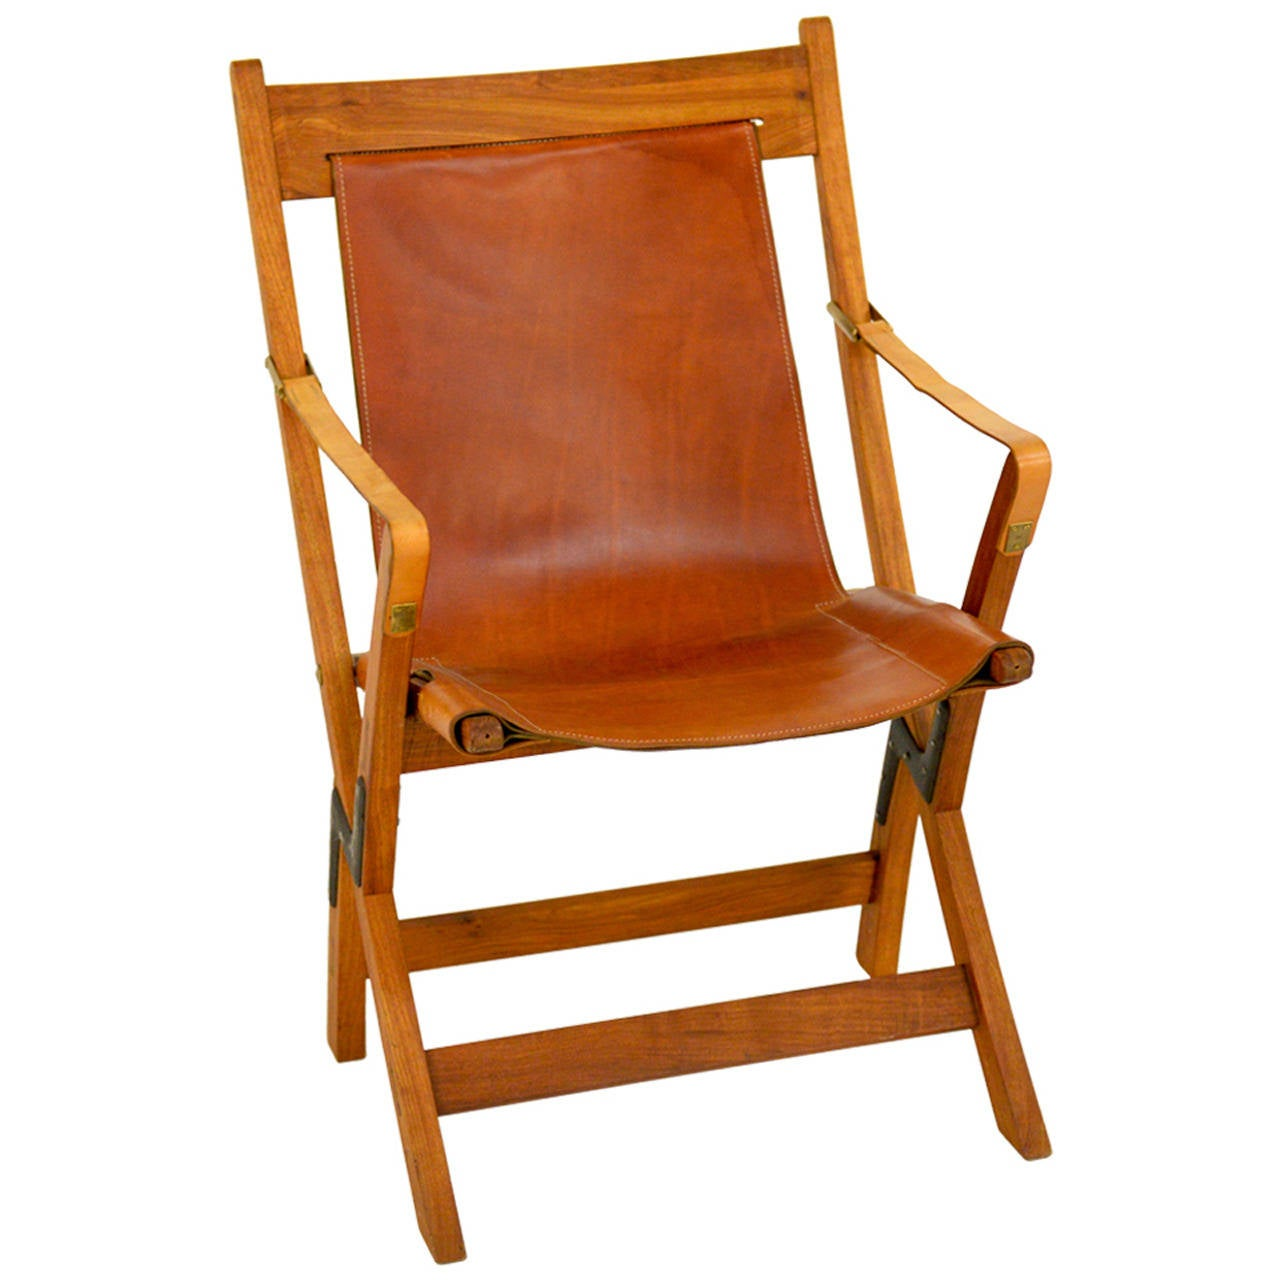 folding chairs for sale bedroom chair pepperfry prototype jens quistgaard sax at